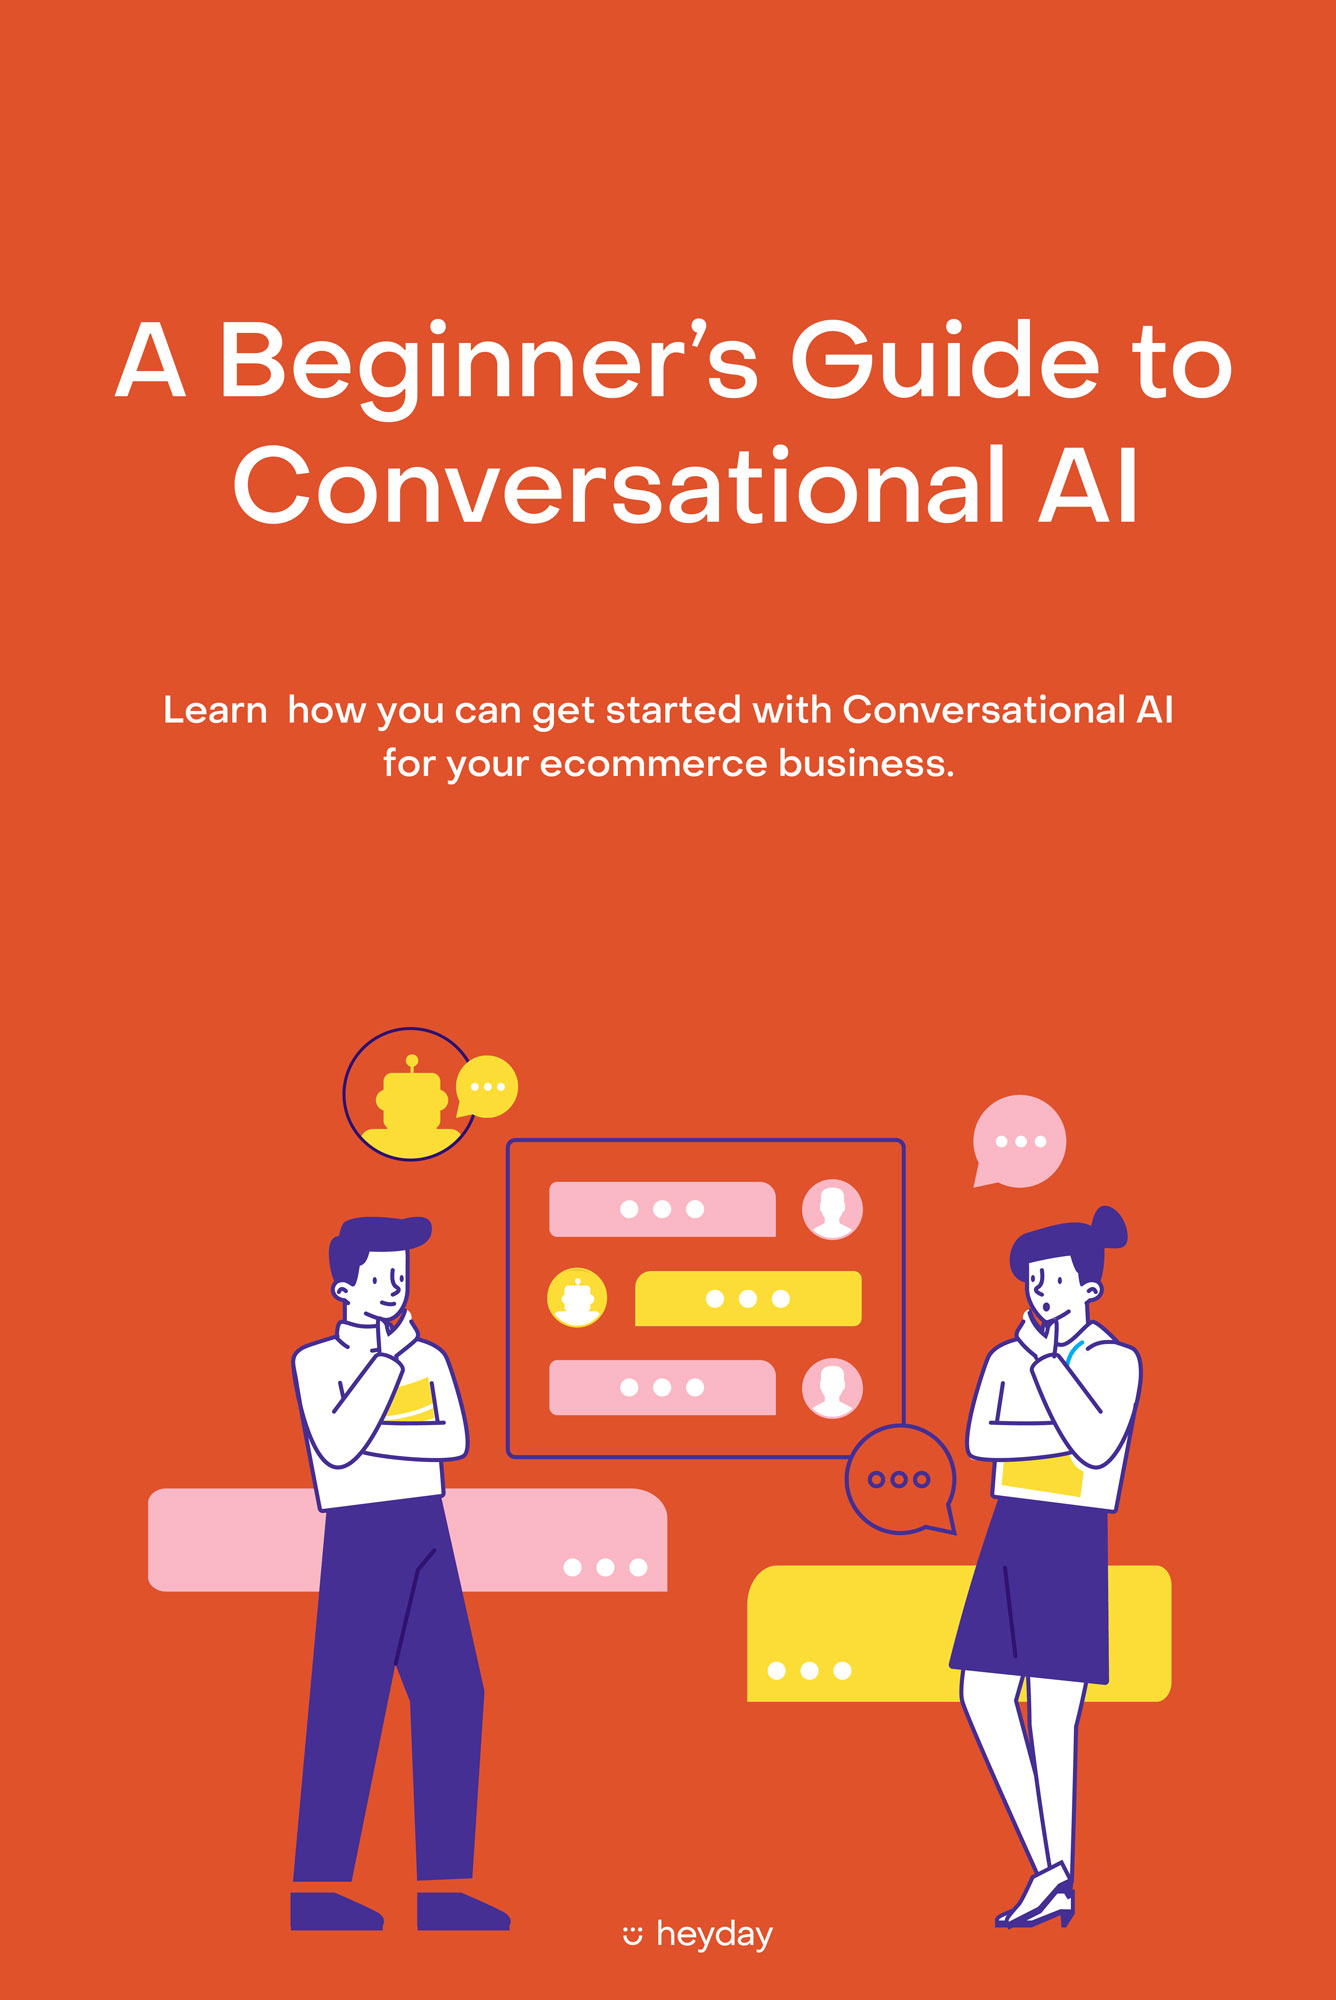 A beginner's guide to conversational AI